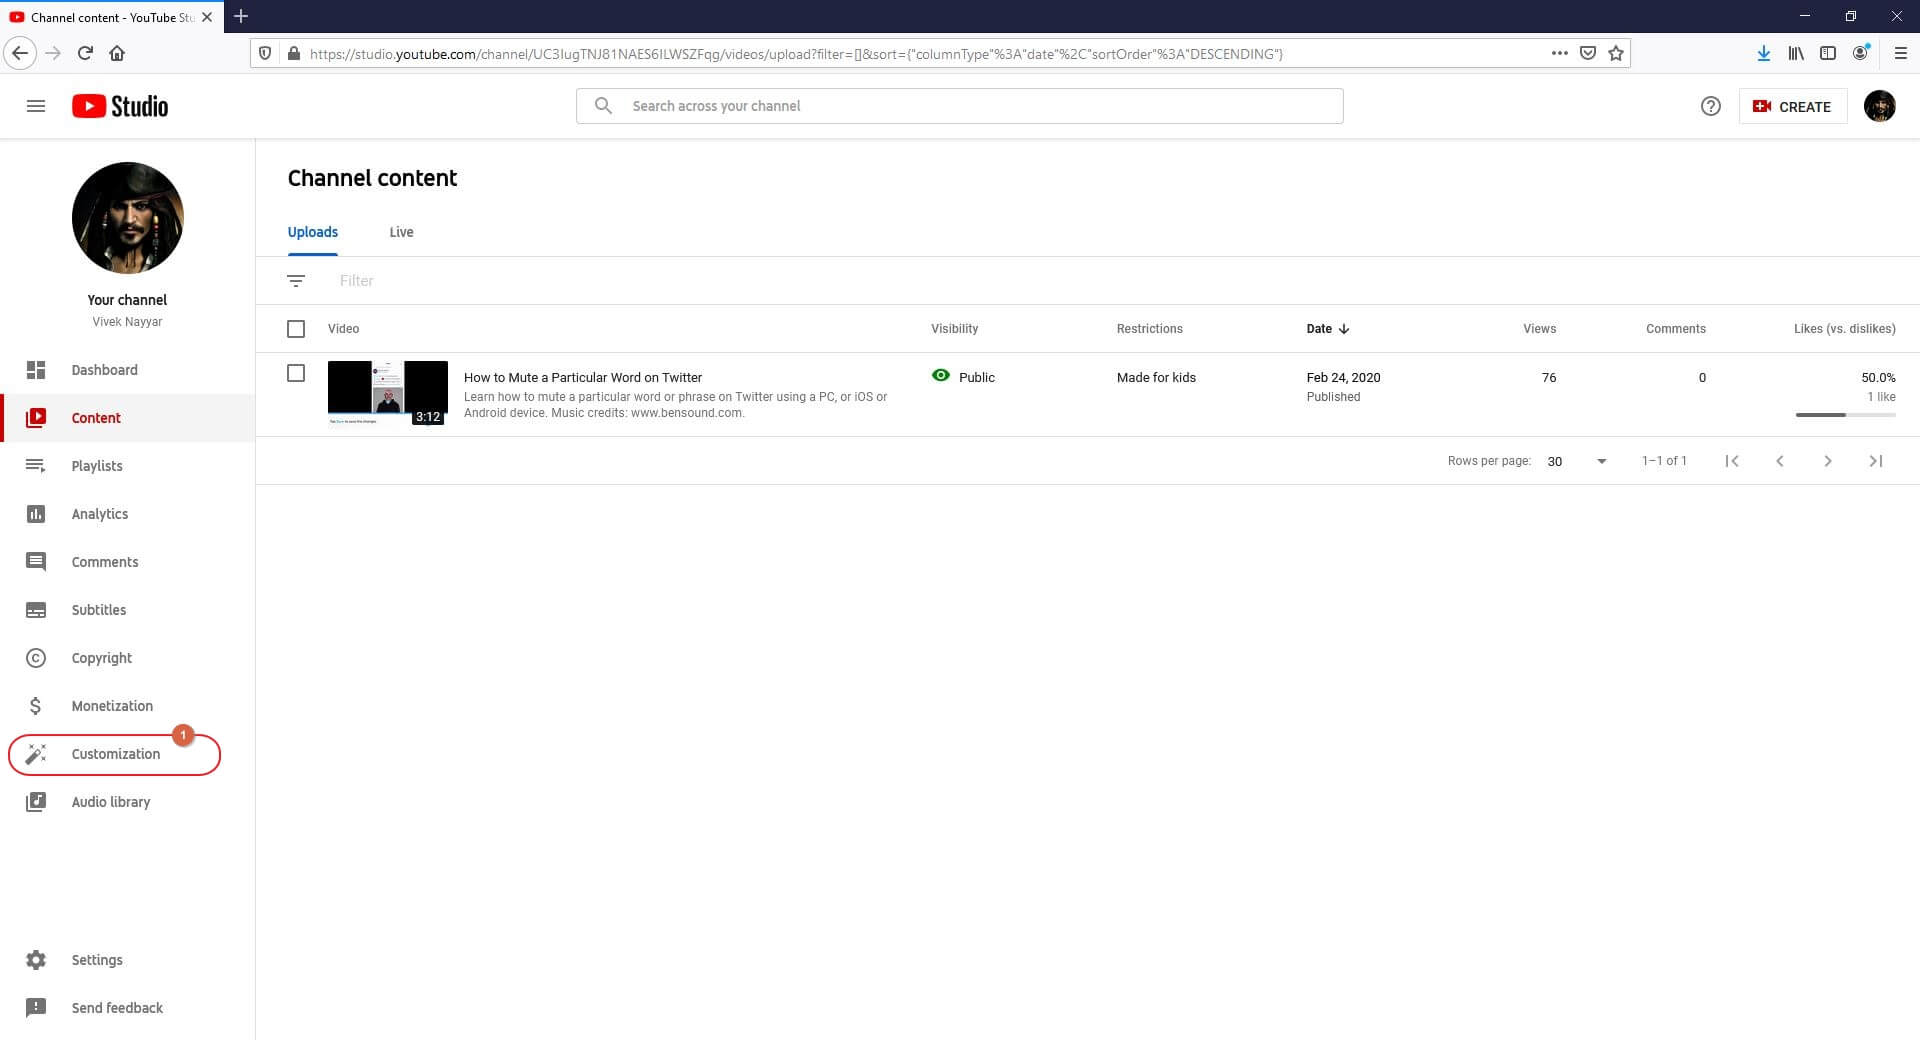 Get to YouTube Studio Customization Section